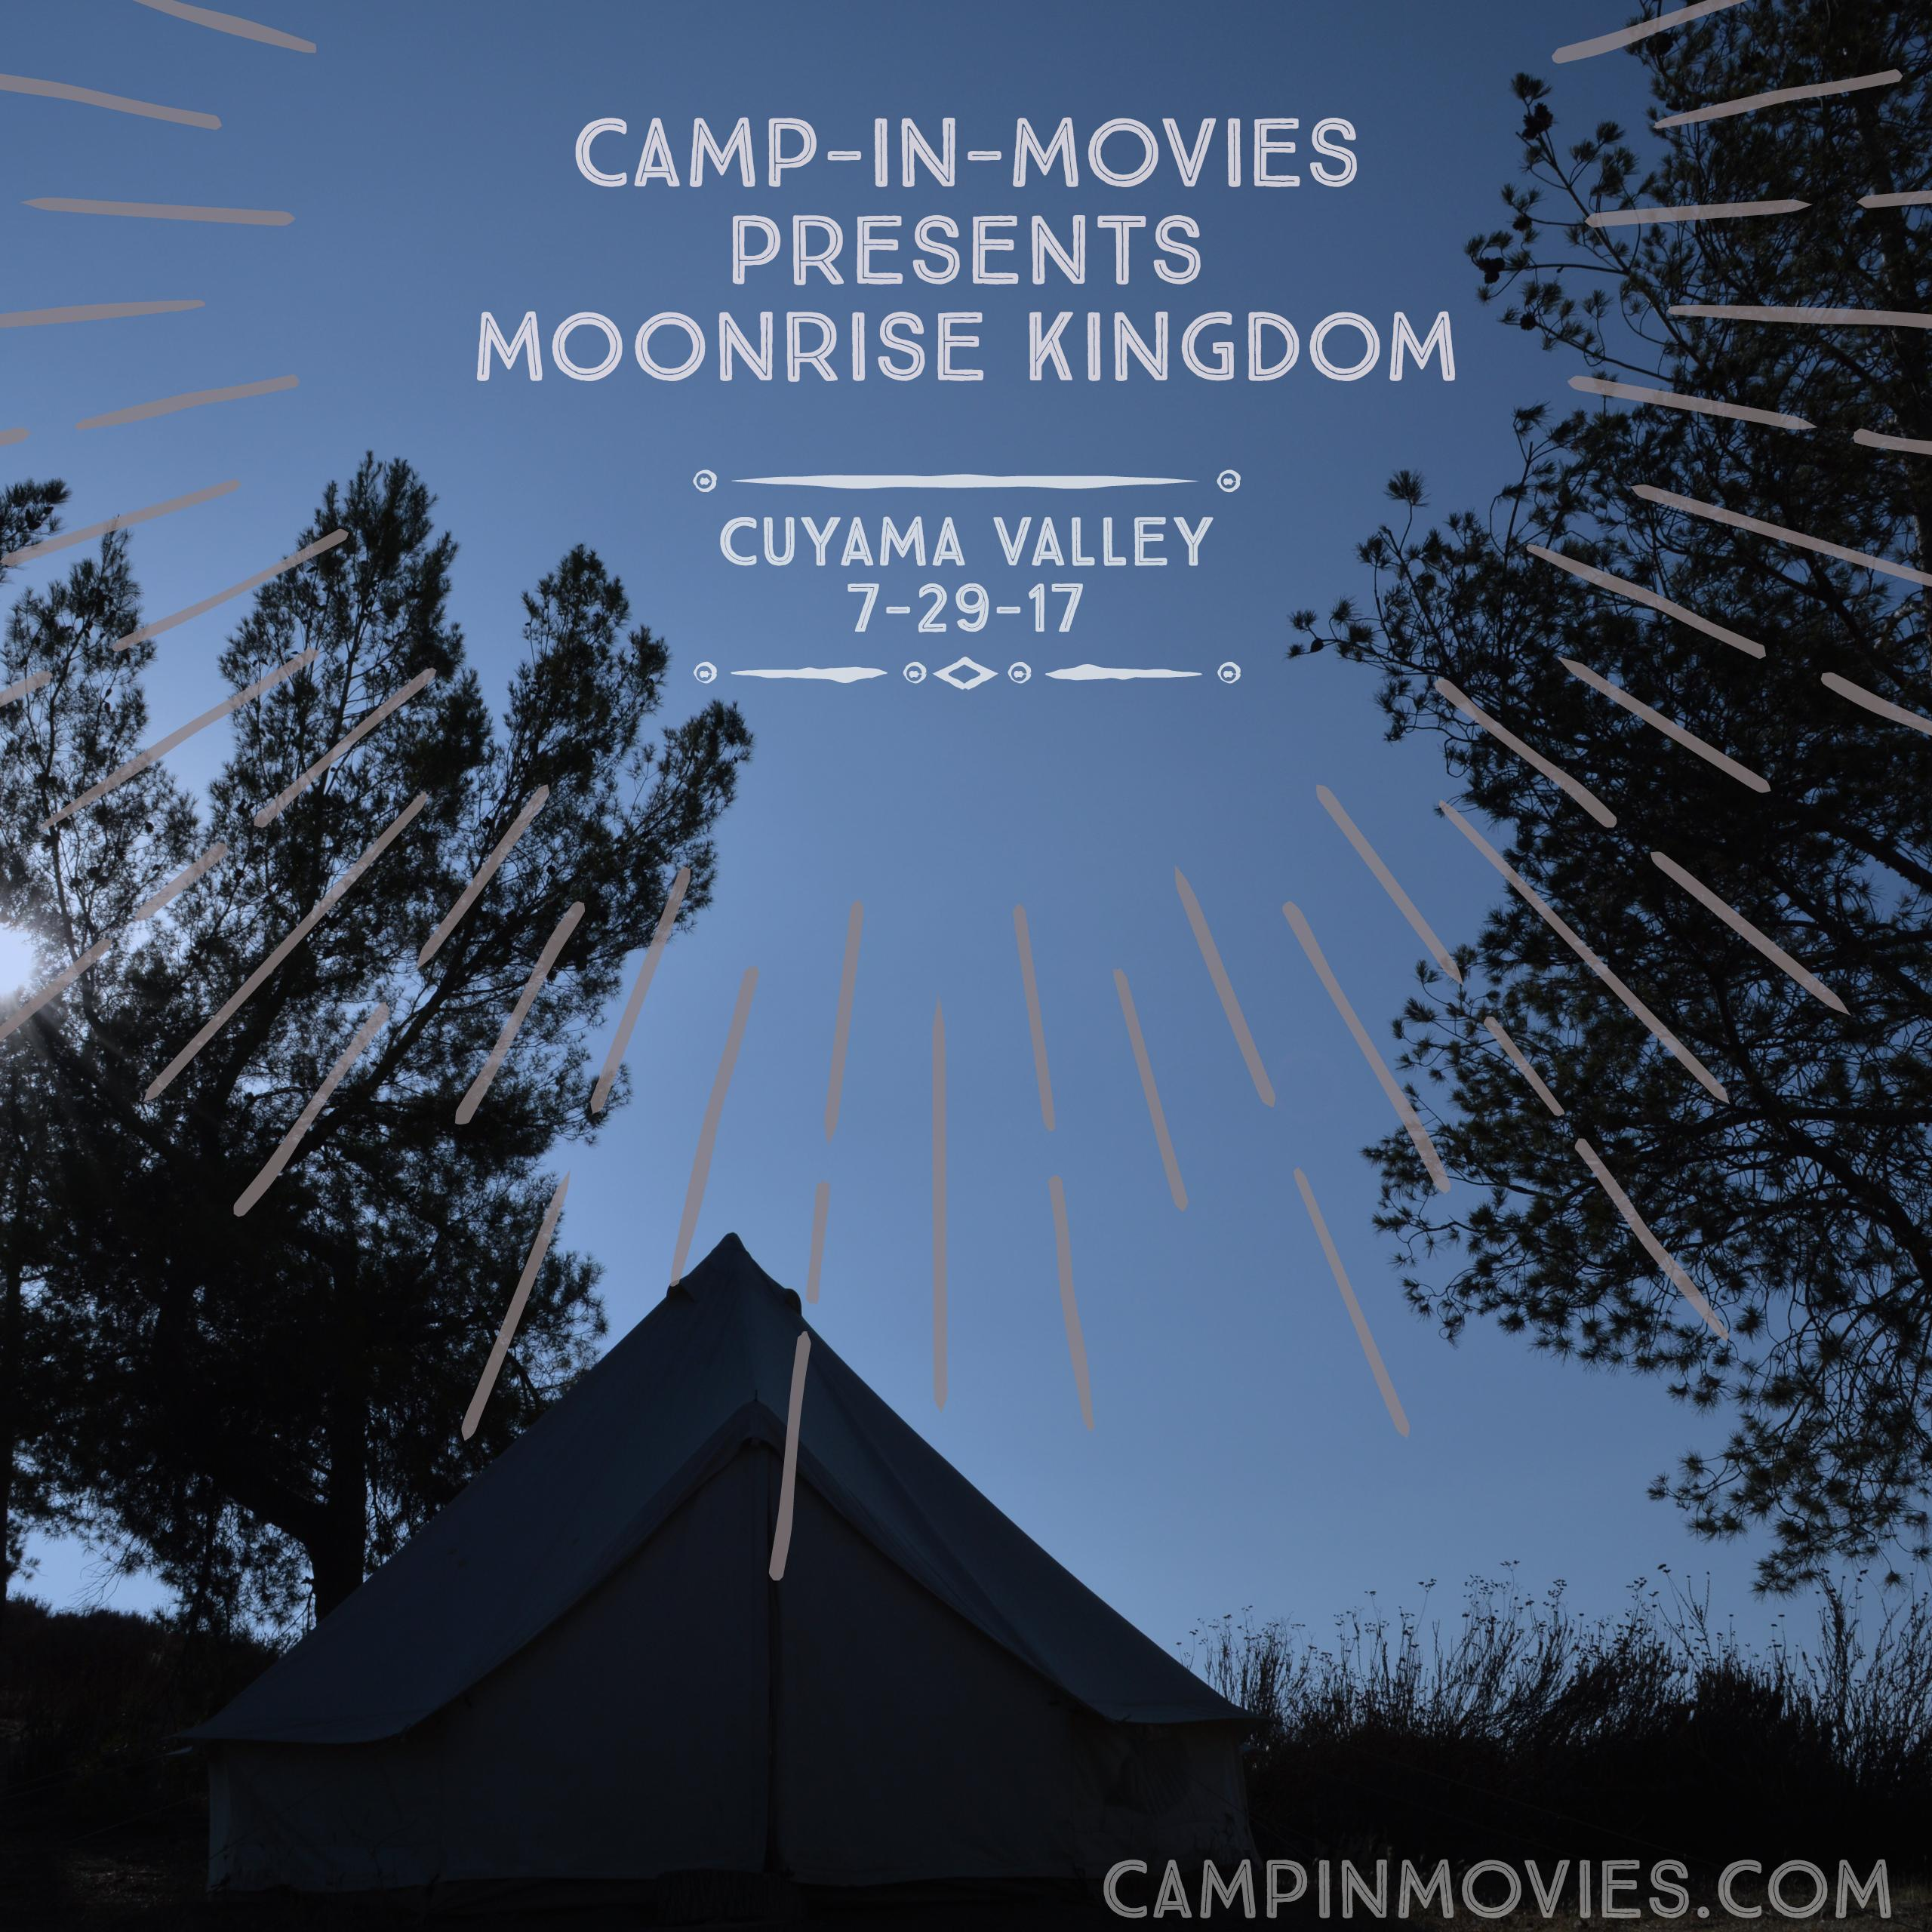 Camp-In-Movies Presents: Moonrise Kingdom